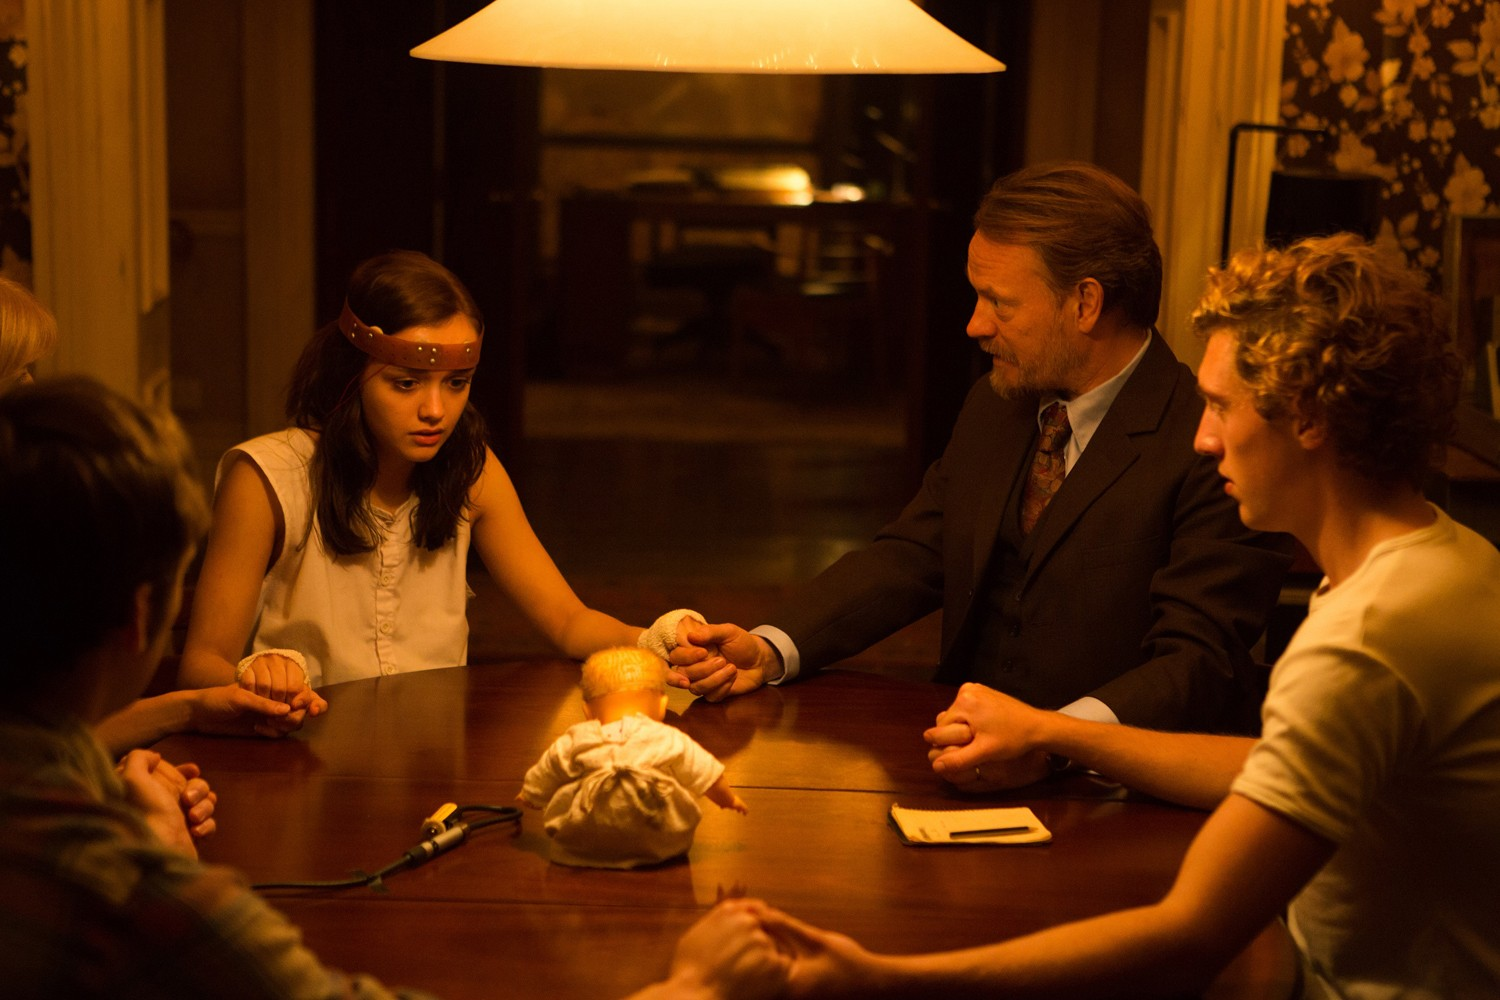 The seance - (l to r) Olivia Cooke, Jared Harris and Rory Fleck-Byrne in The Quiet Ones (2014)